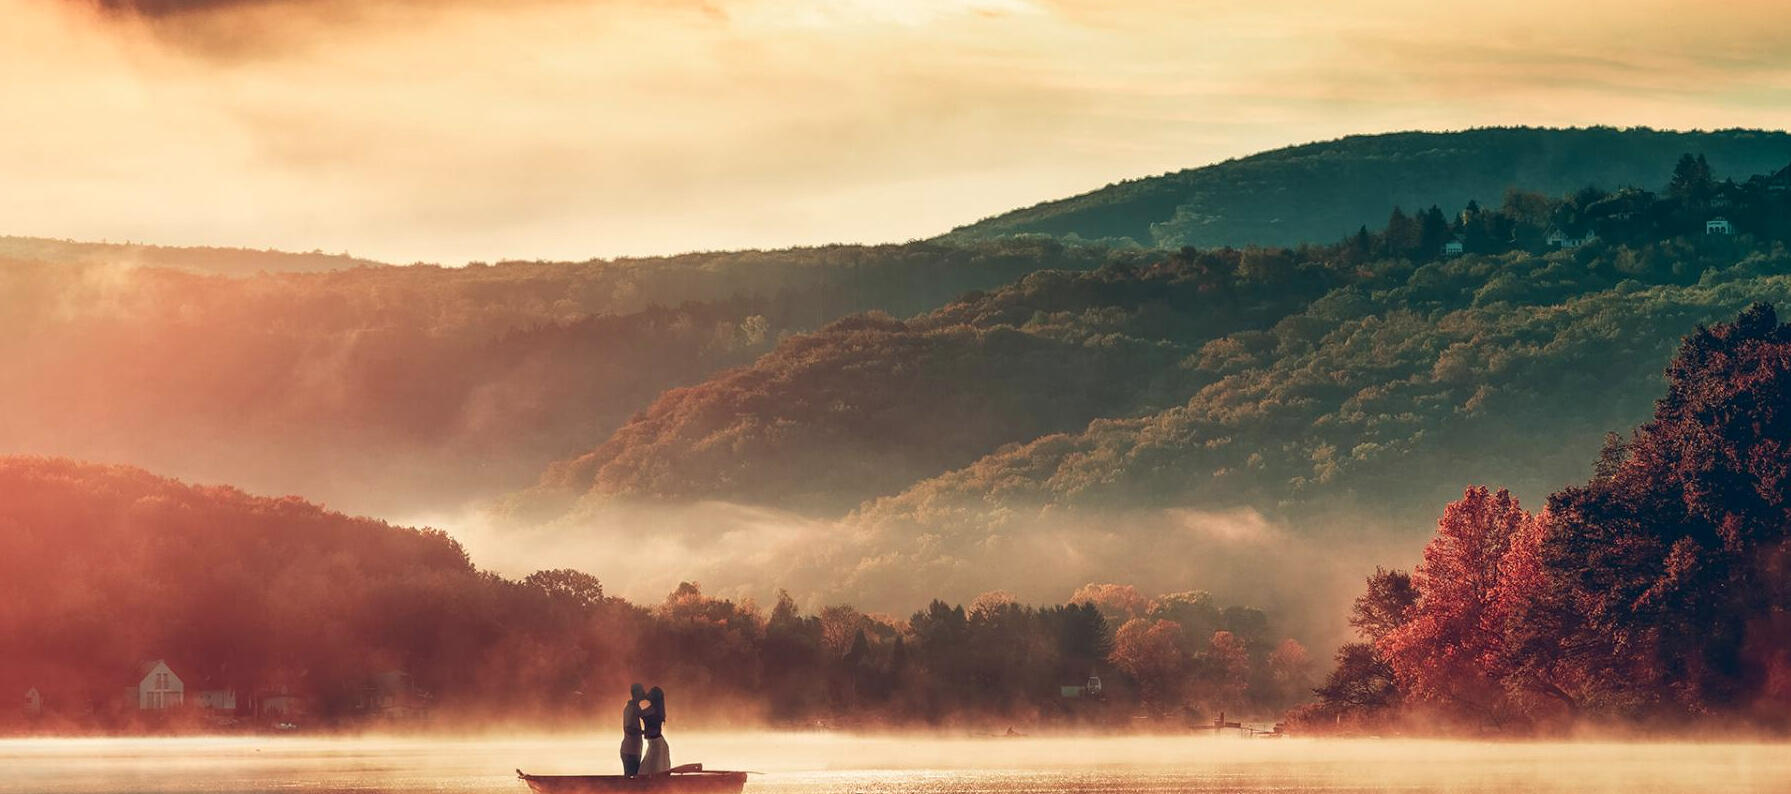 A couple posing on a boat in front of a hillside landscape colorfully lit by sun rays